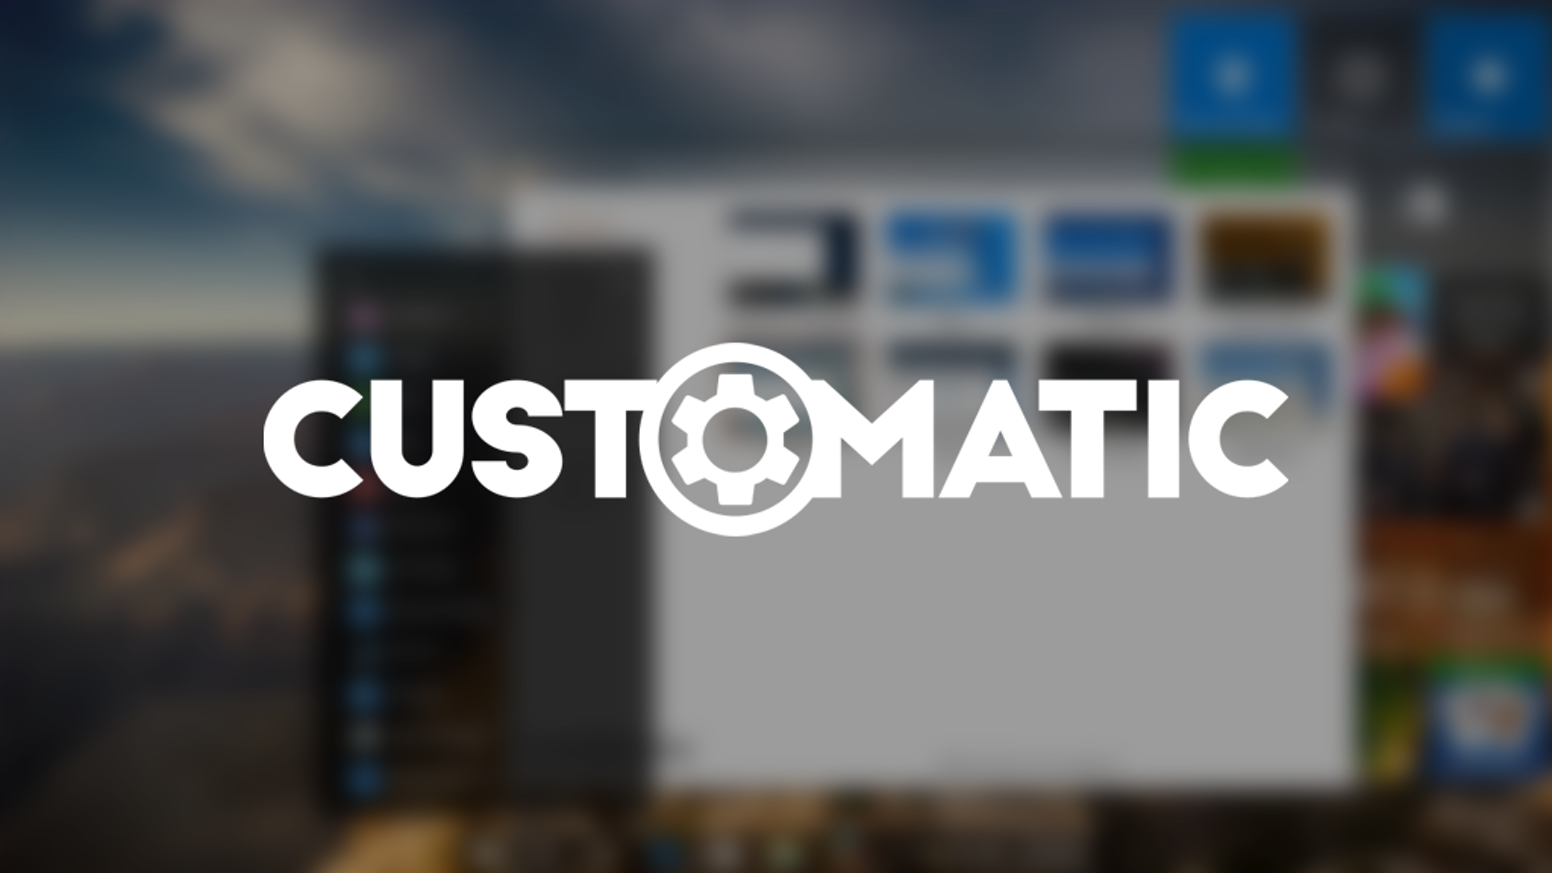 Customatic - Make Windows 10 look and work the way you want  by